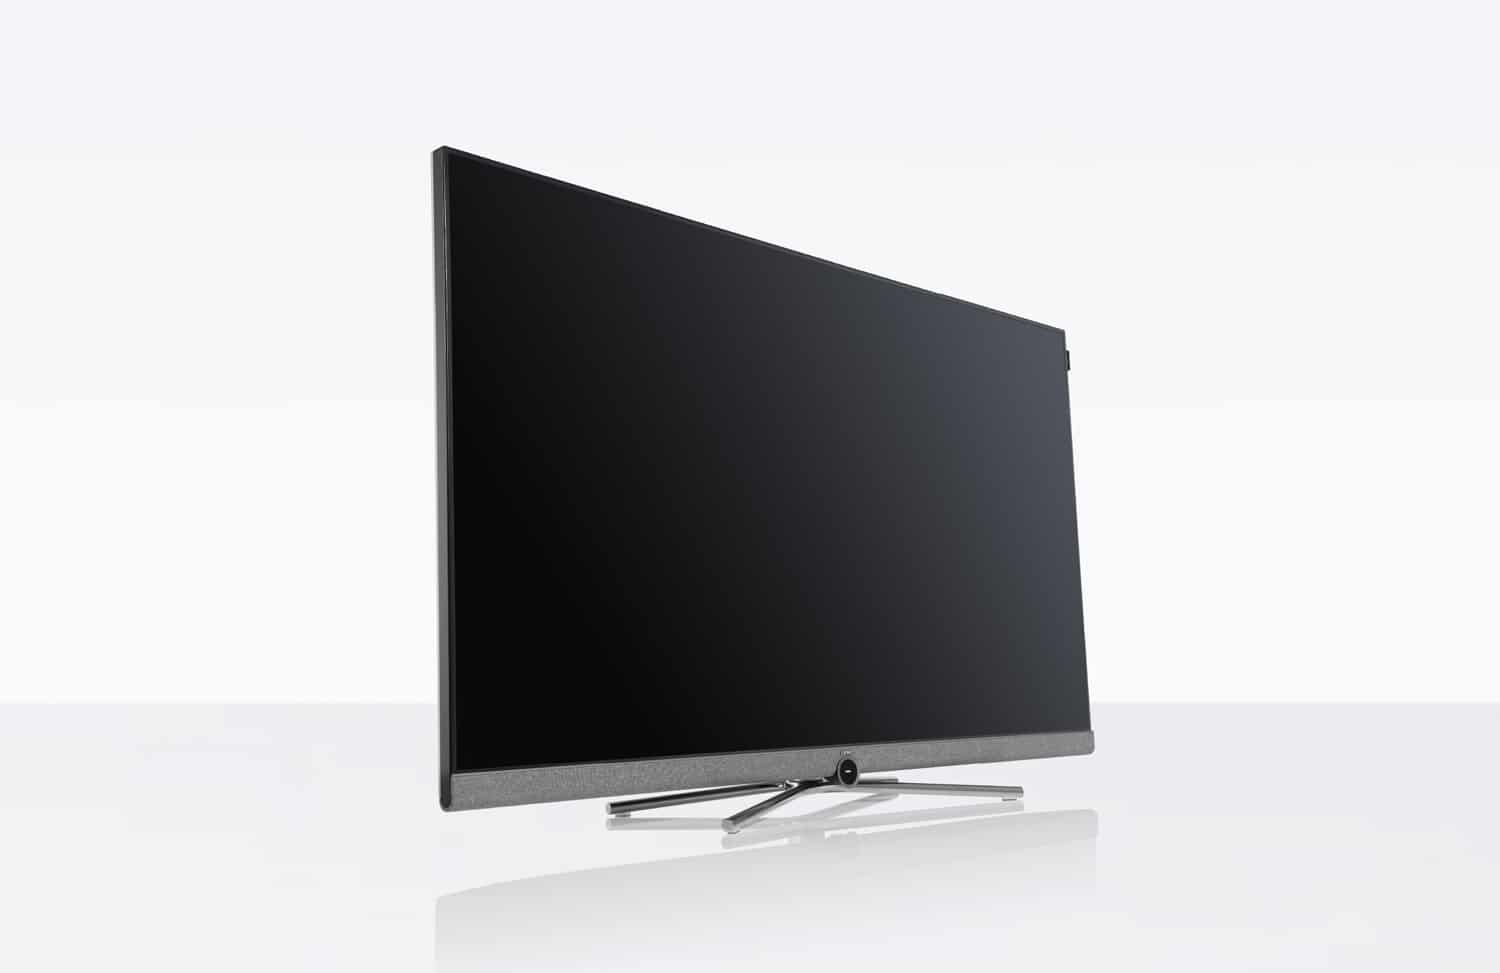 loewe bild 5 uhd tvs erh ltlich in 32 bis 55 zoll ab euro. Black Bedroom Furniture Sets. Home Design Ideas